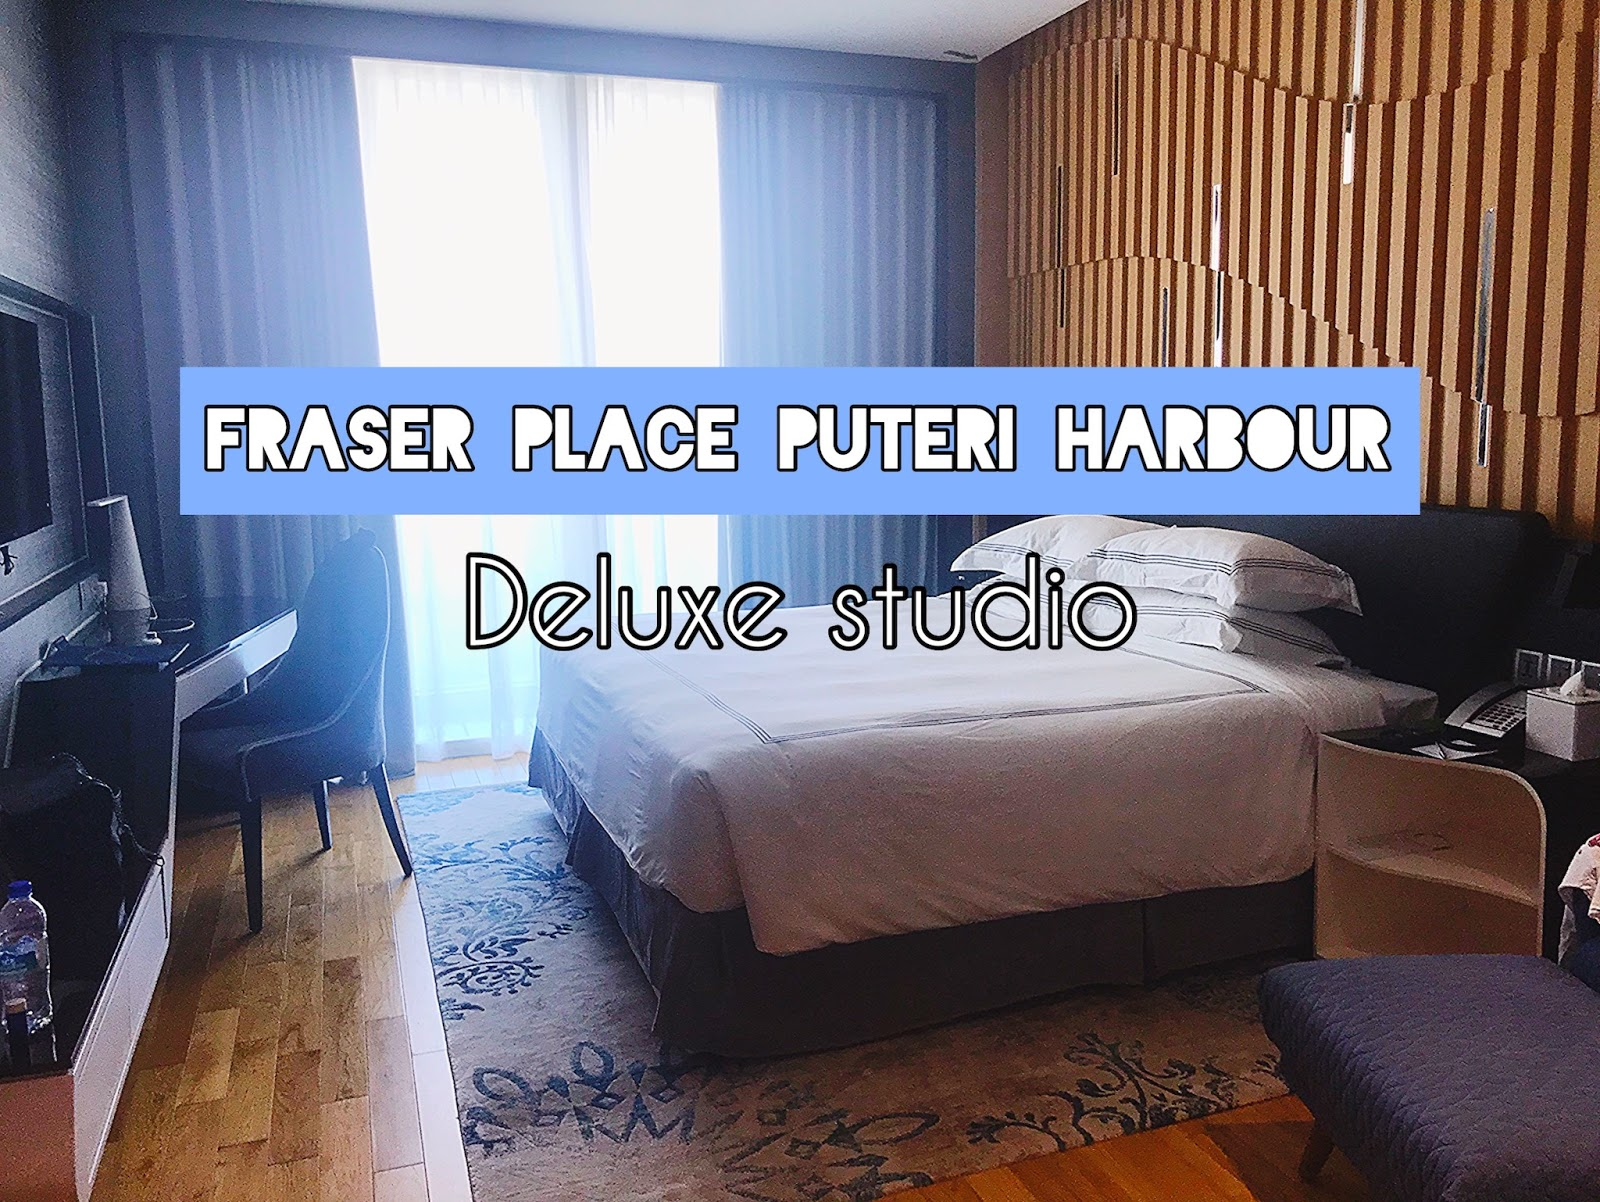 fraser place puteri harbour, malaysia, hotel review, deluxe studio